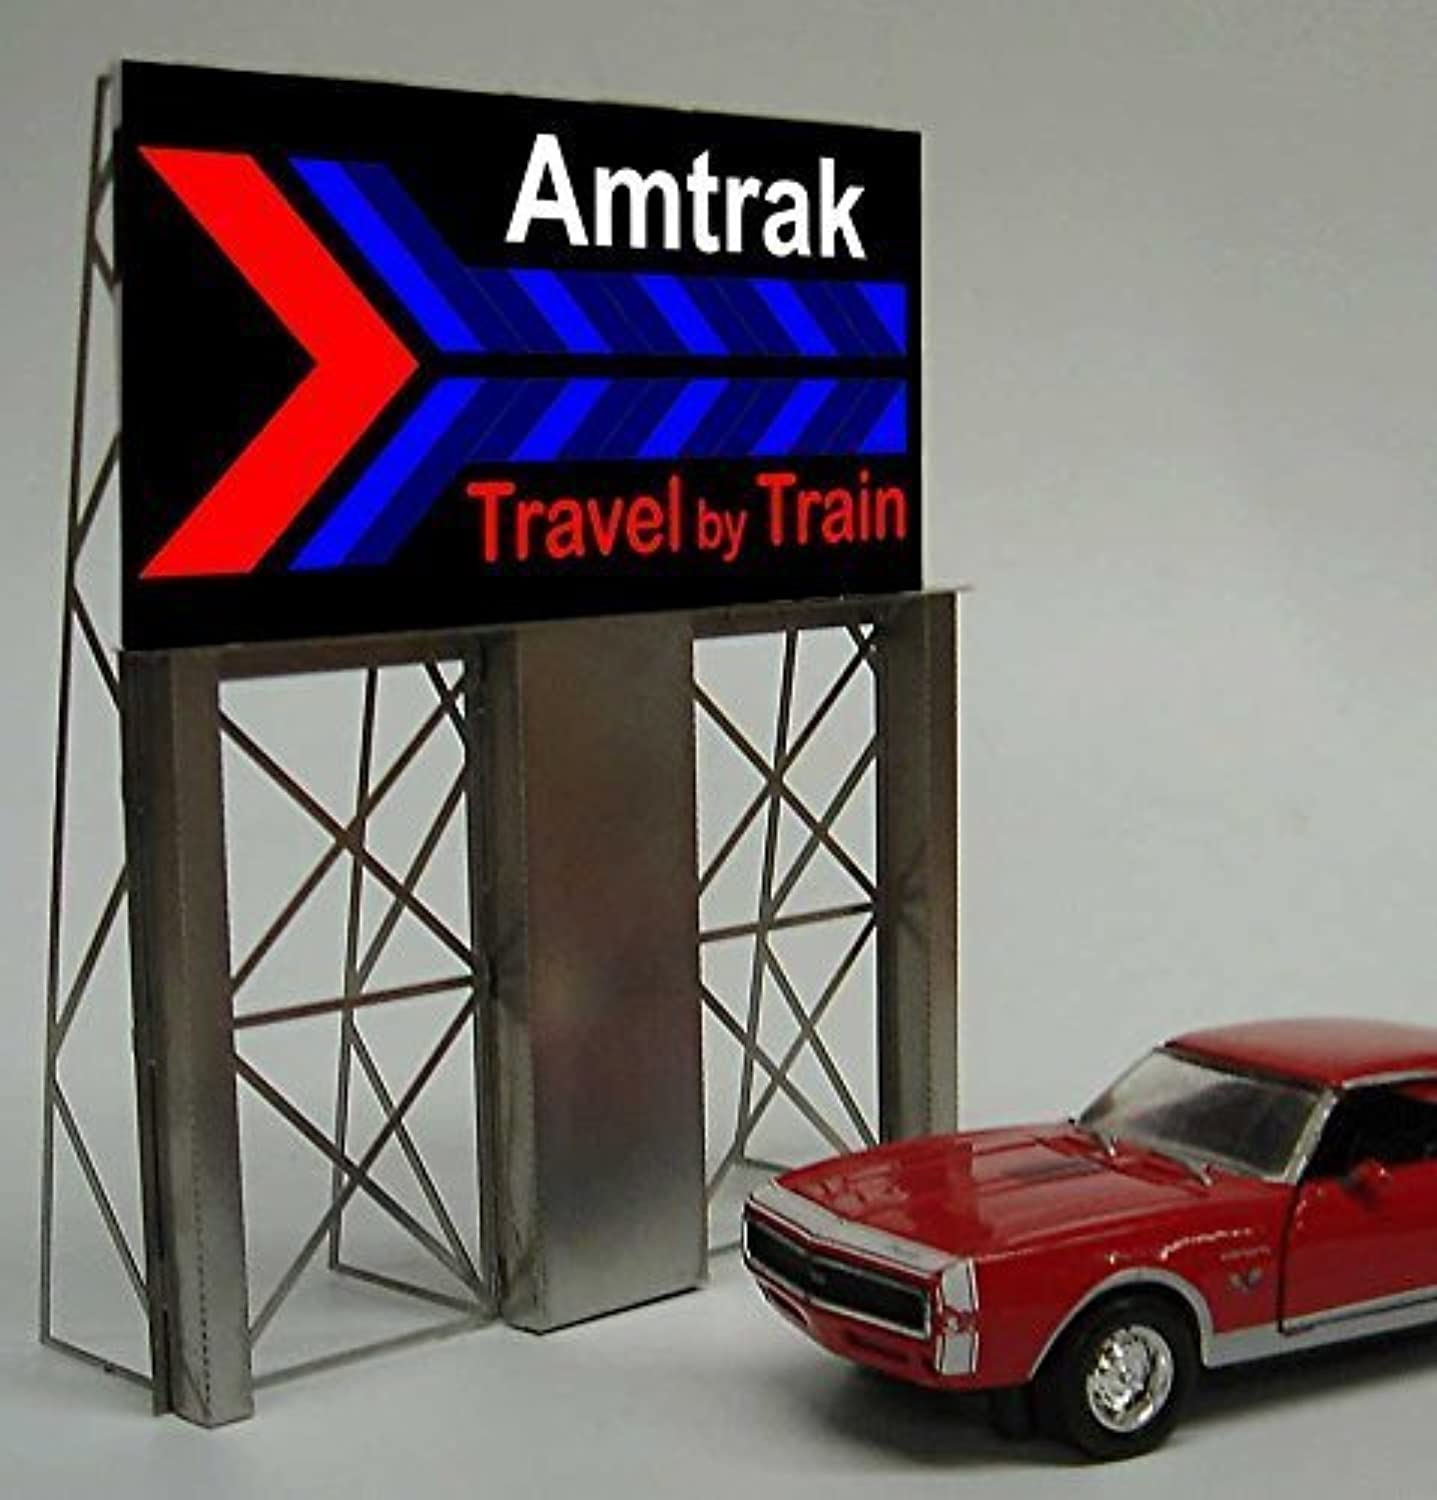 más descuento 8281 Amtrak Roadside Billboardby Billboardby Billboardby Miller Signs by Miller Engineering  comprar marca